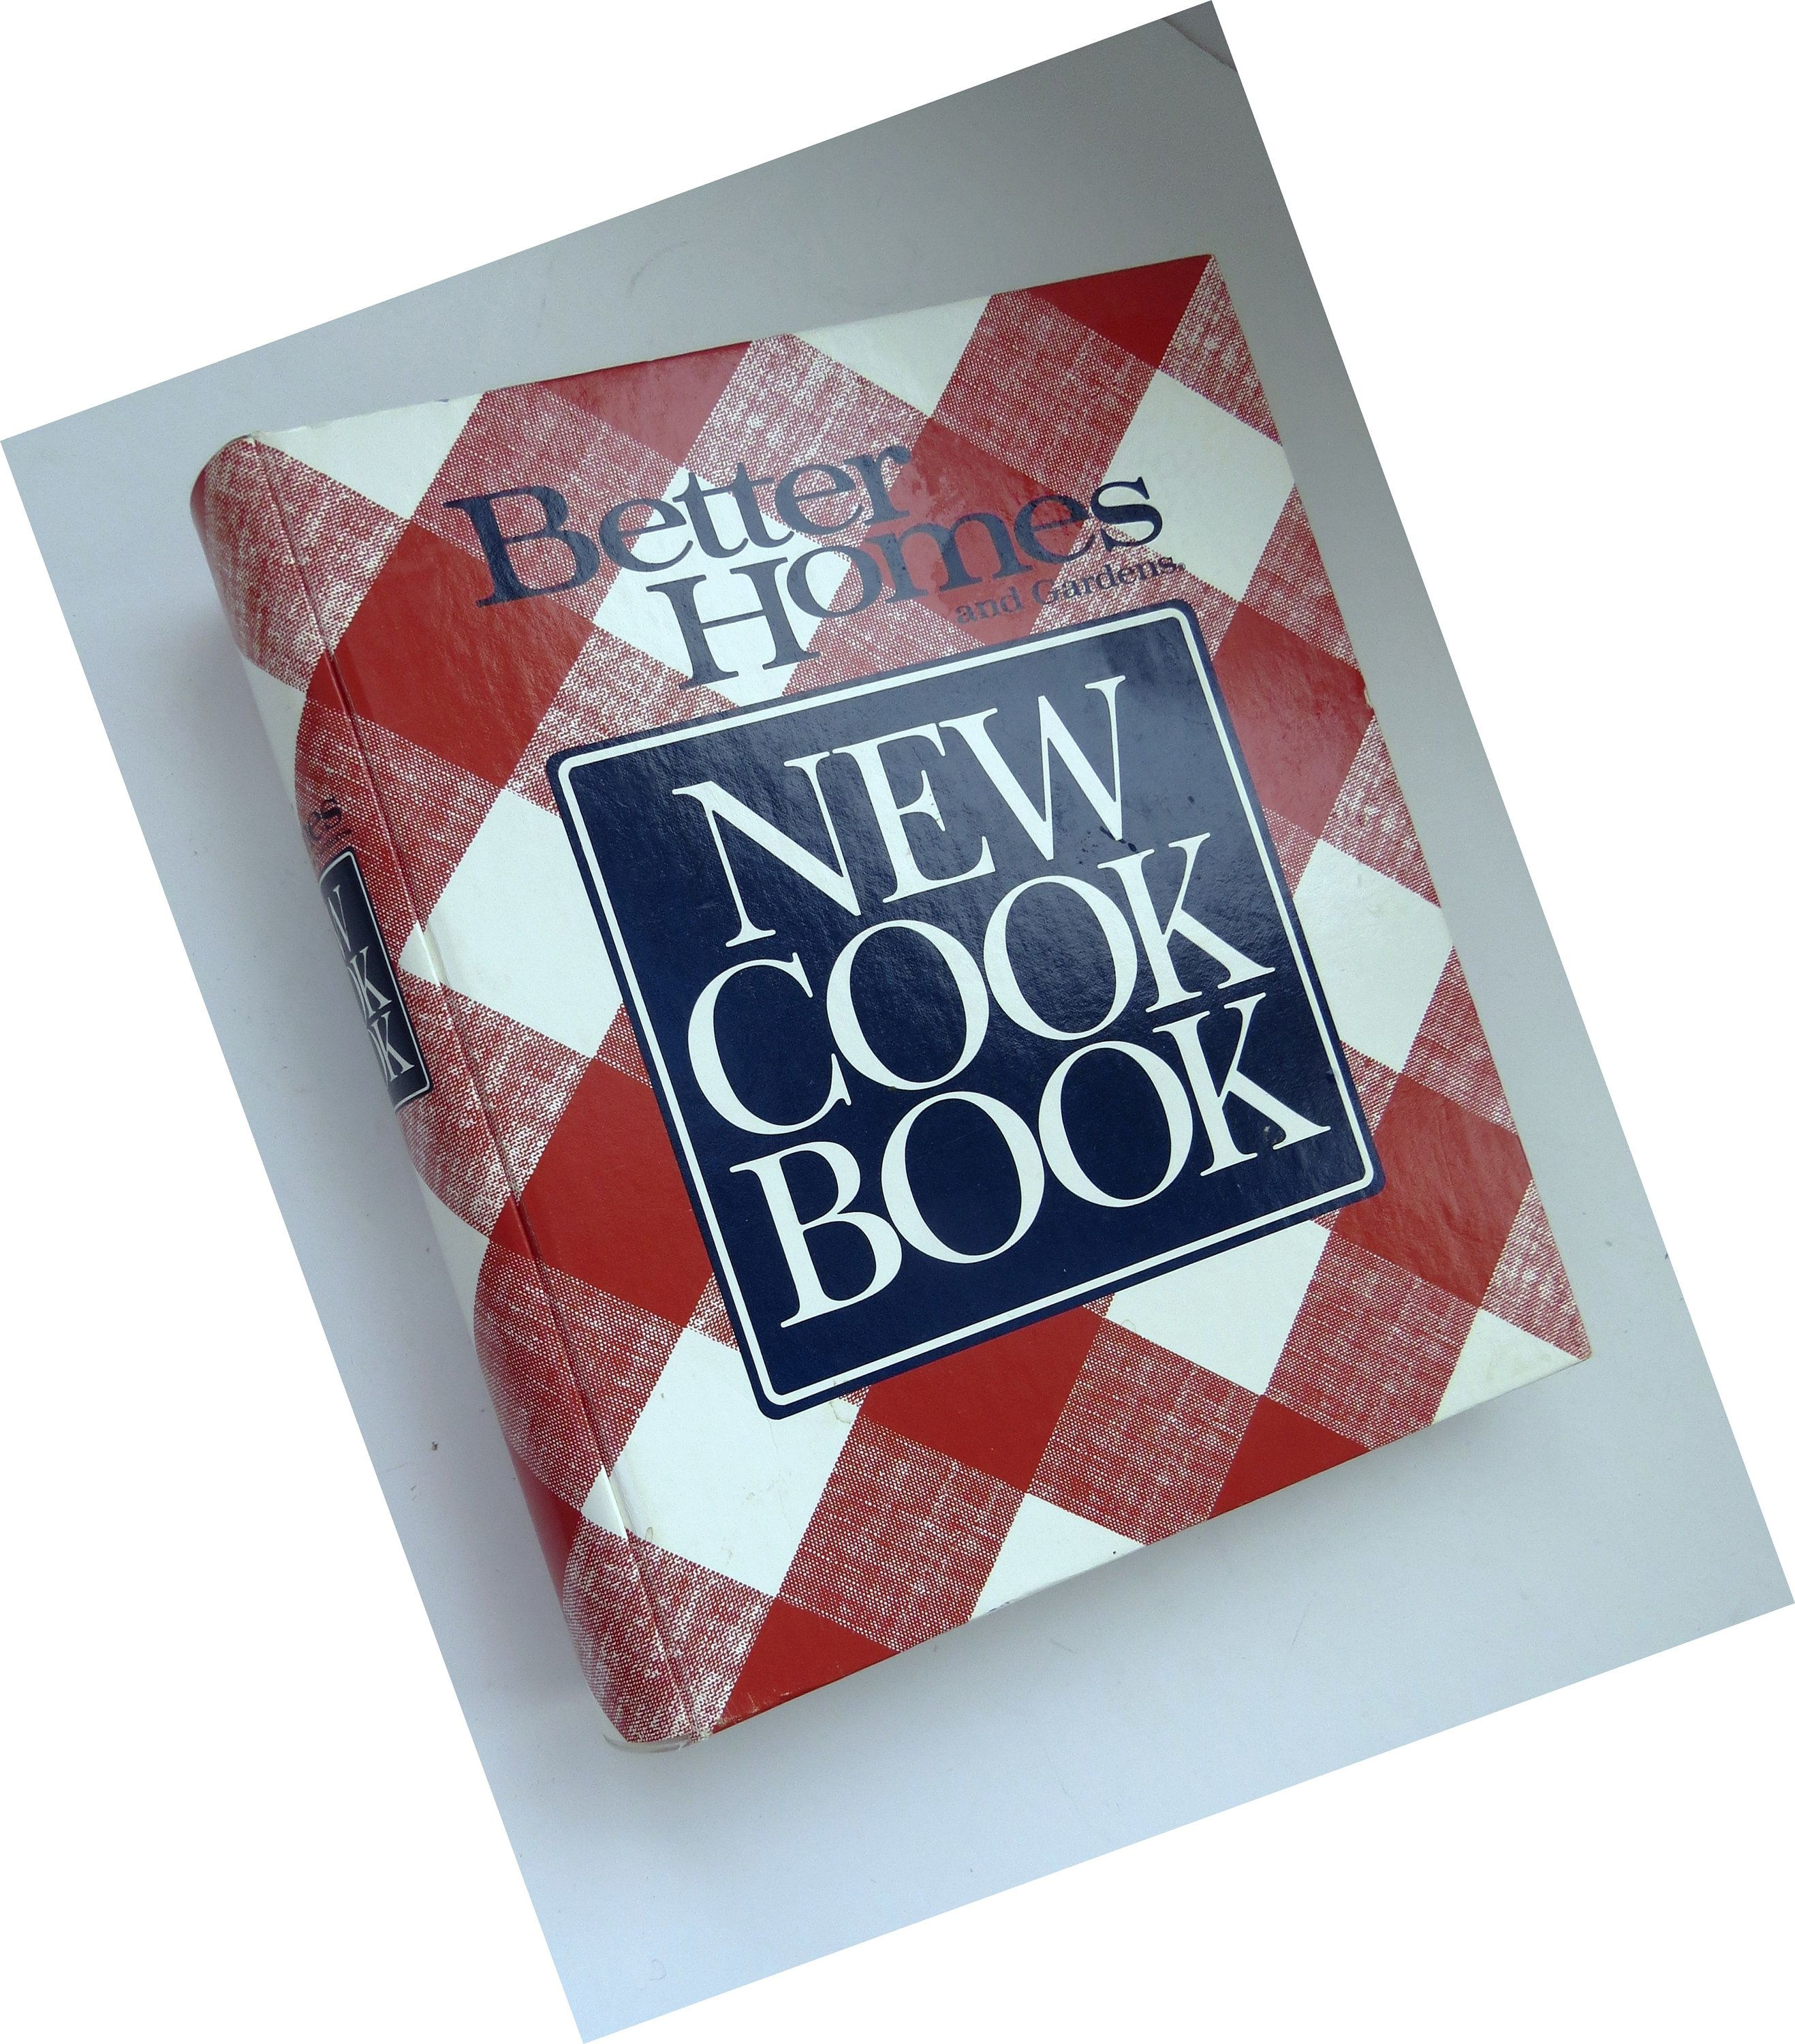 40955597b5c80968a3b00902663ad819 - Better Homes And Gardens Red And White Cookbook